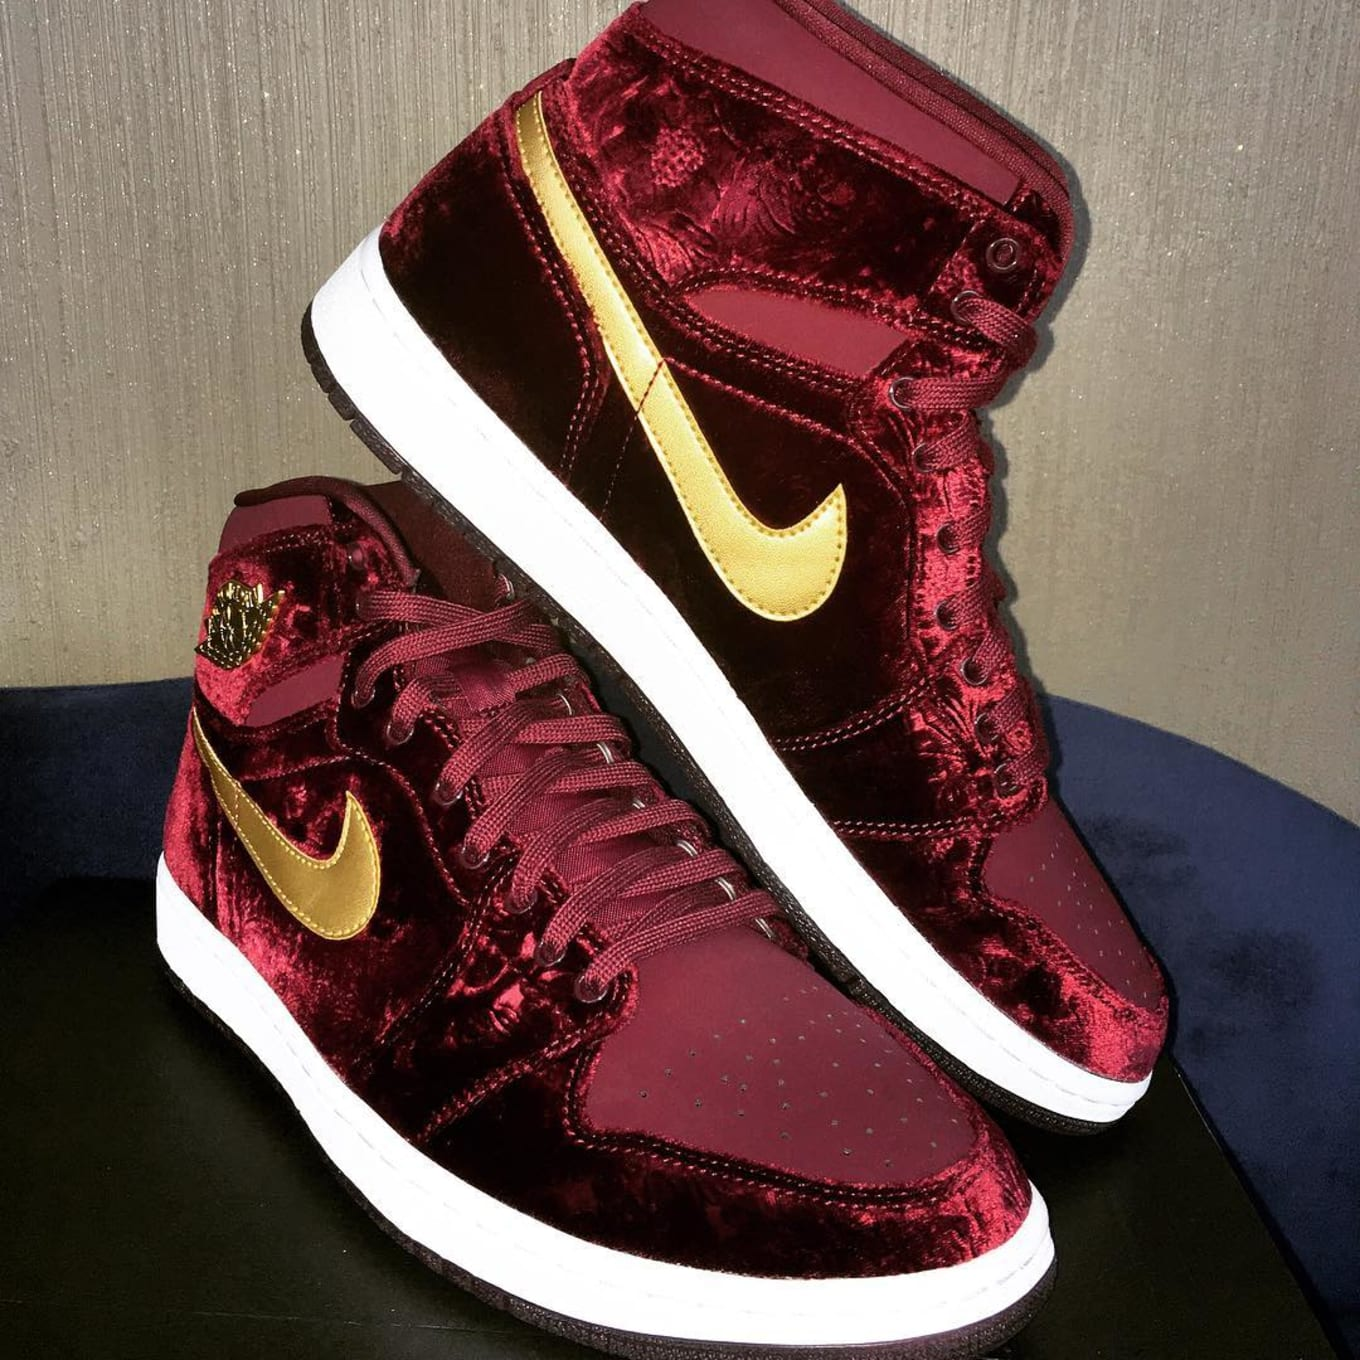 info for d6bfe f139b Official images for the Heiress Air Jordan 1.